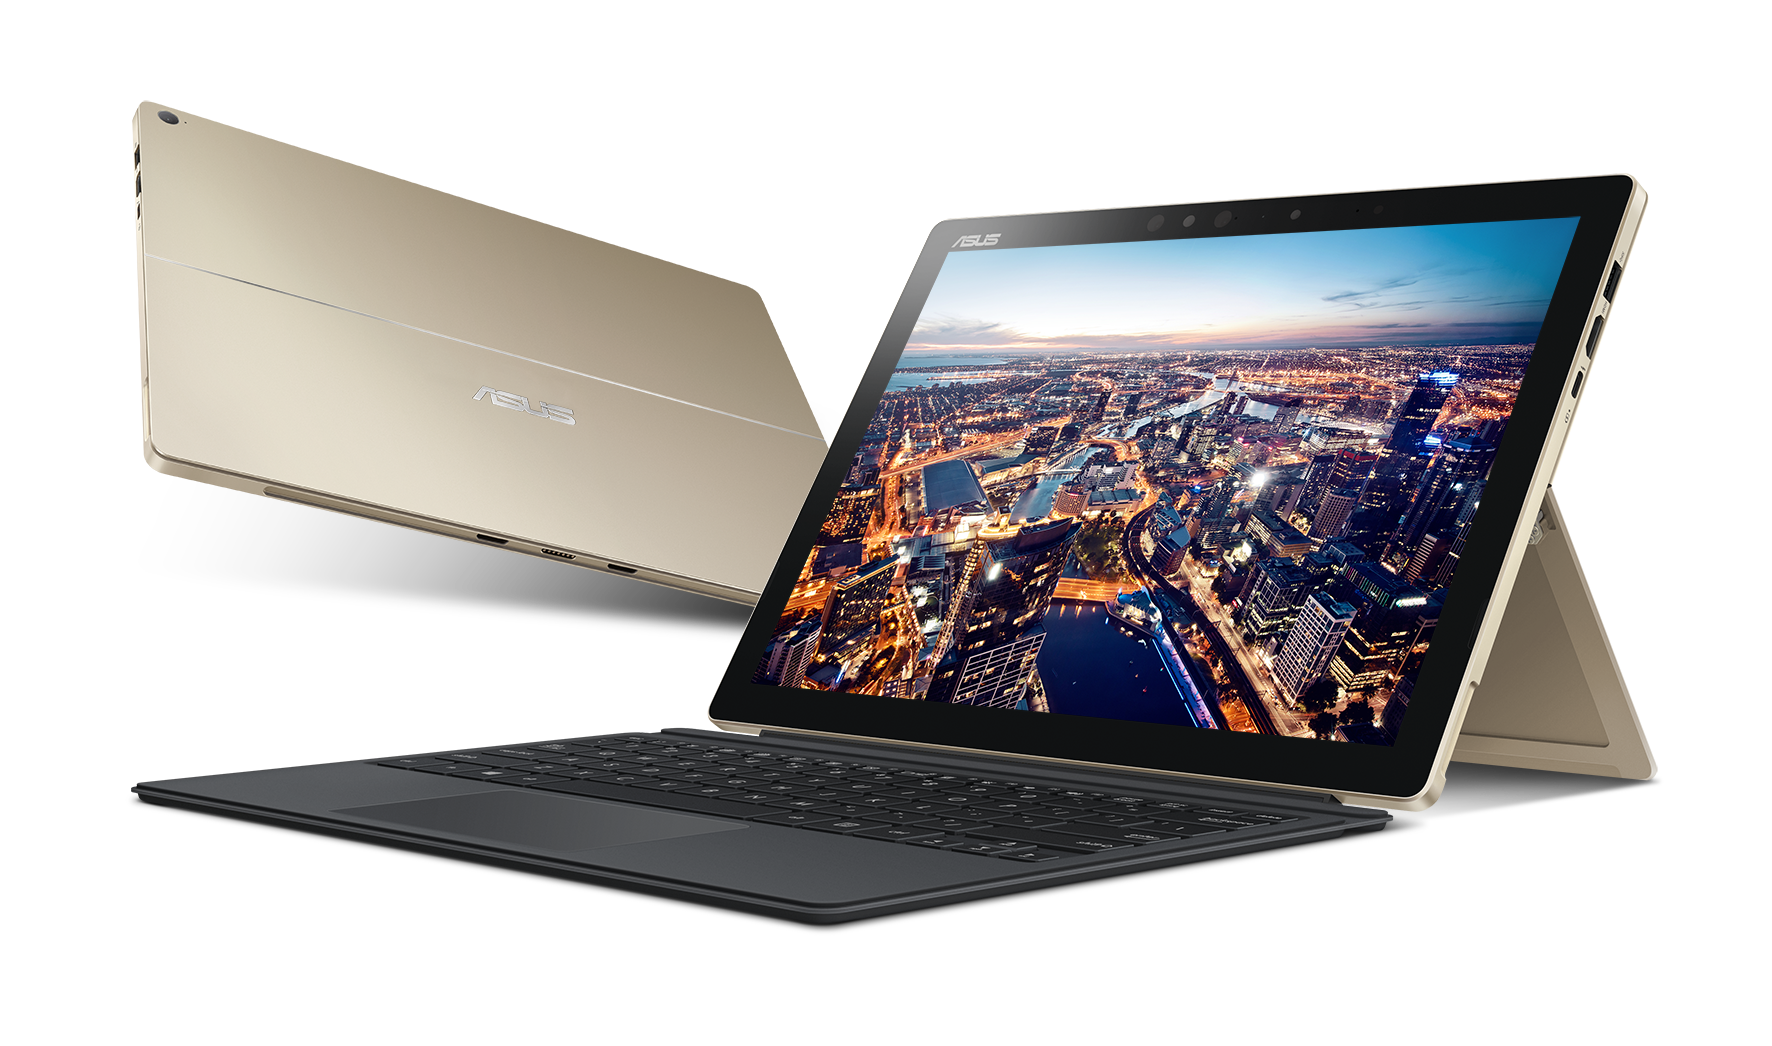 Computex Slideshow 4 - Asus Transformer 3 Pro